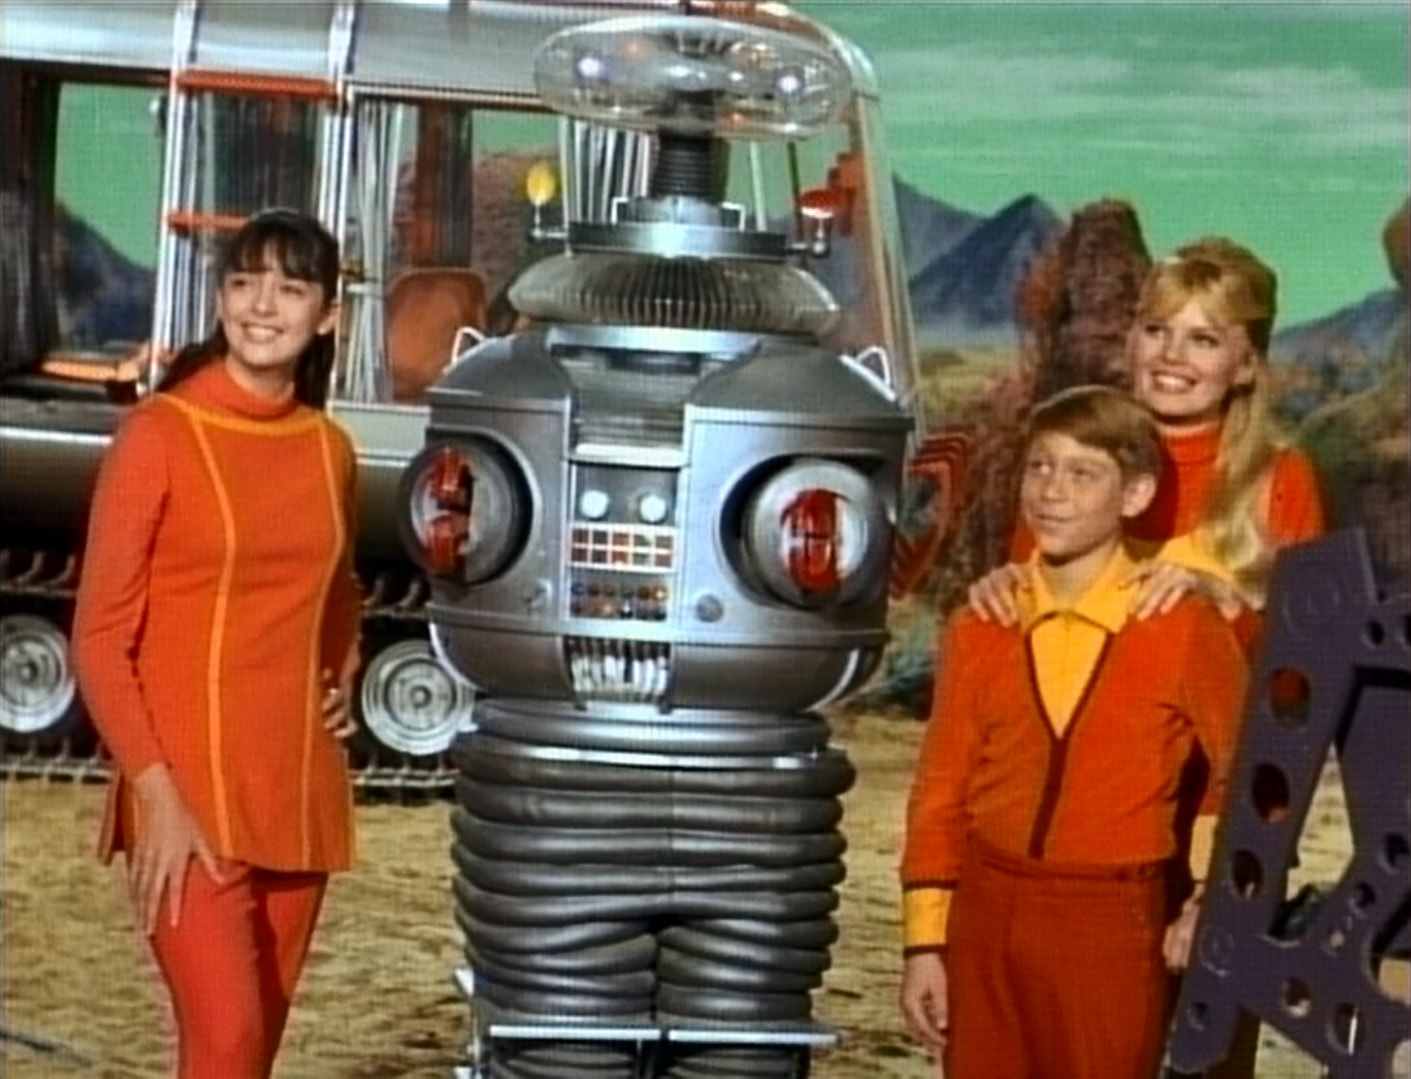 Lost In Space Episode 55 Trip Through The Robot